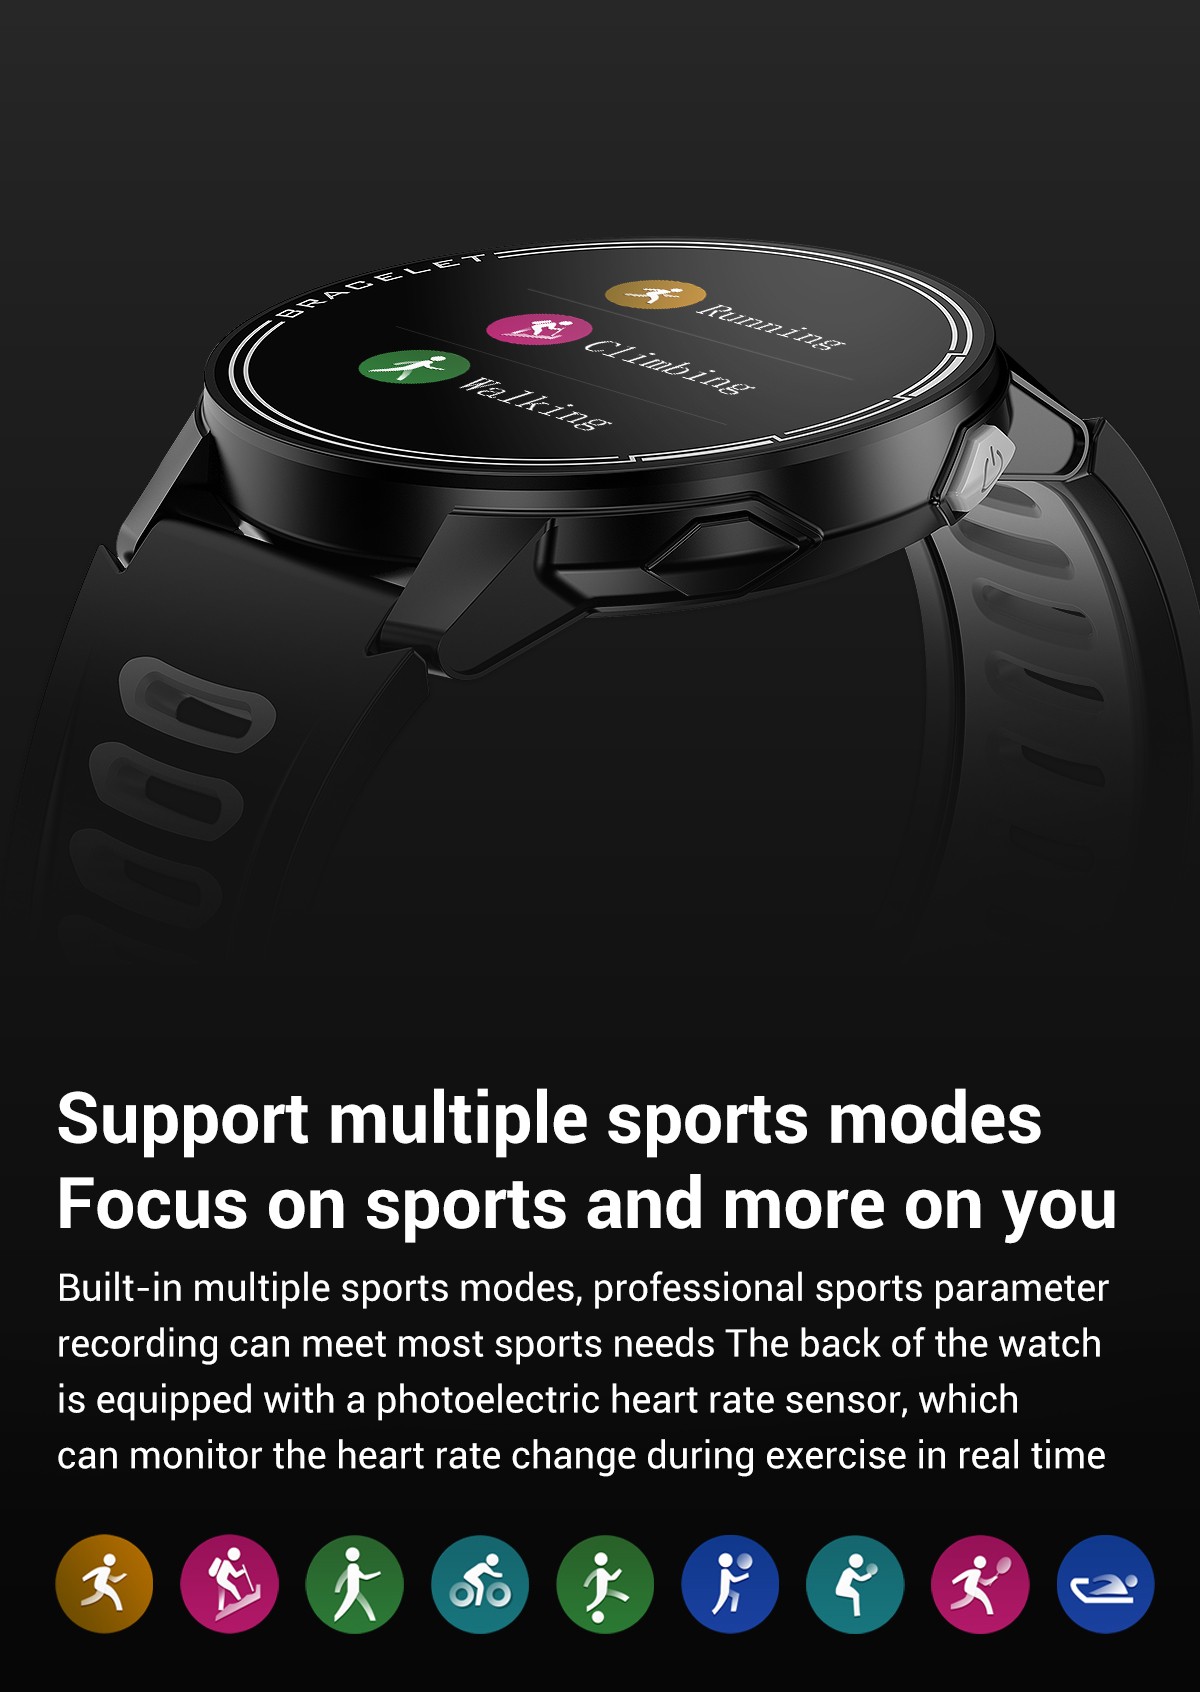 H188879b984f440838b079d37148121a3E 2020 New L6 Smart Watch IP68 Waterproof Sport Men Women Bluetooth Smartwatch Fitness Tracker Heart Rate Monitor For Android IOS